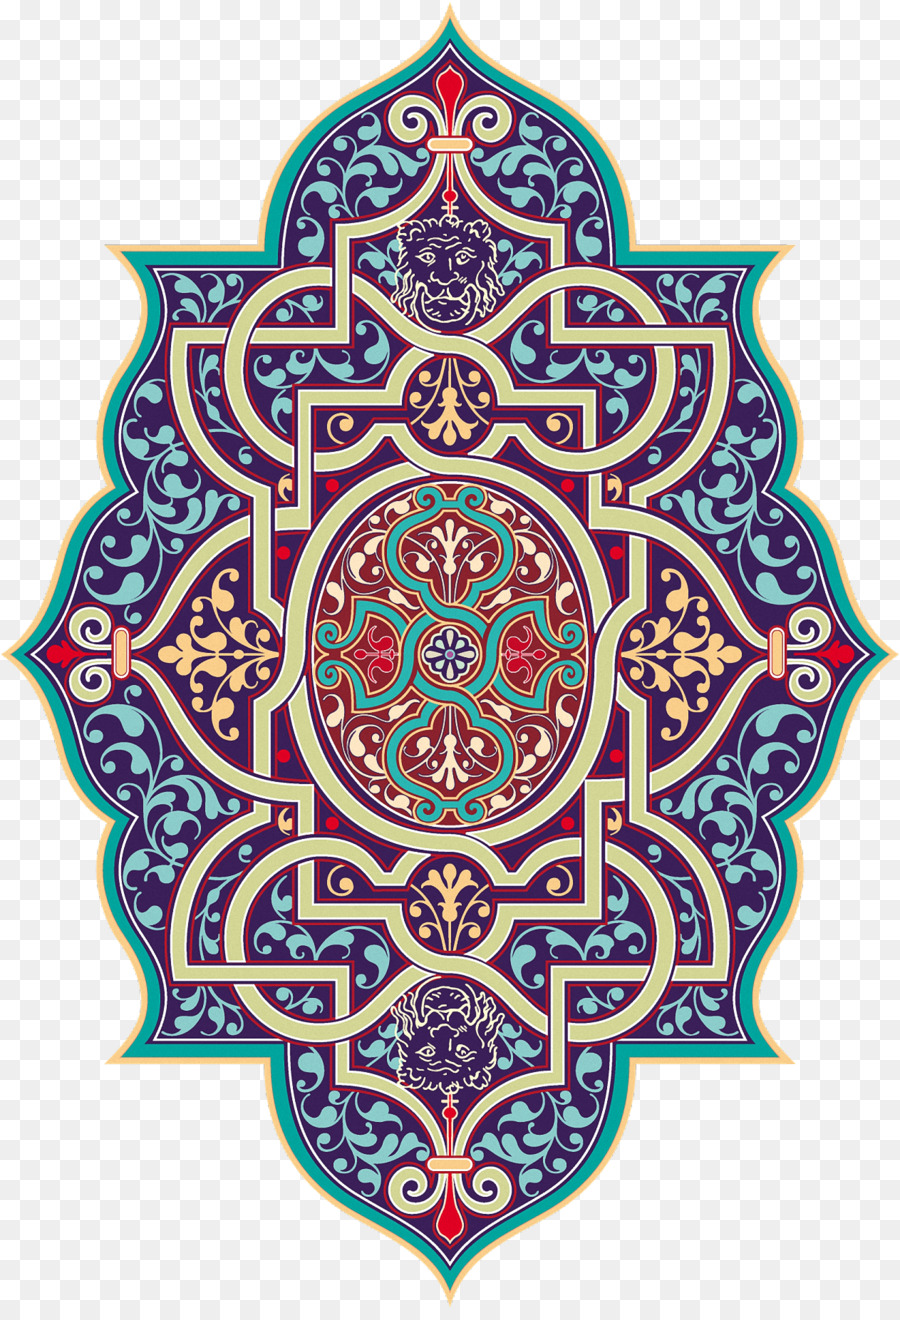 Islamic motifs clipart freeuse library Islamic Background Pattern clipart - Islam, Ornament, Pattern ... freeuse library